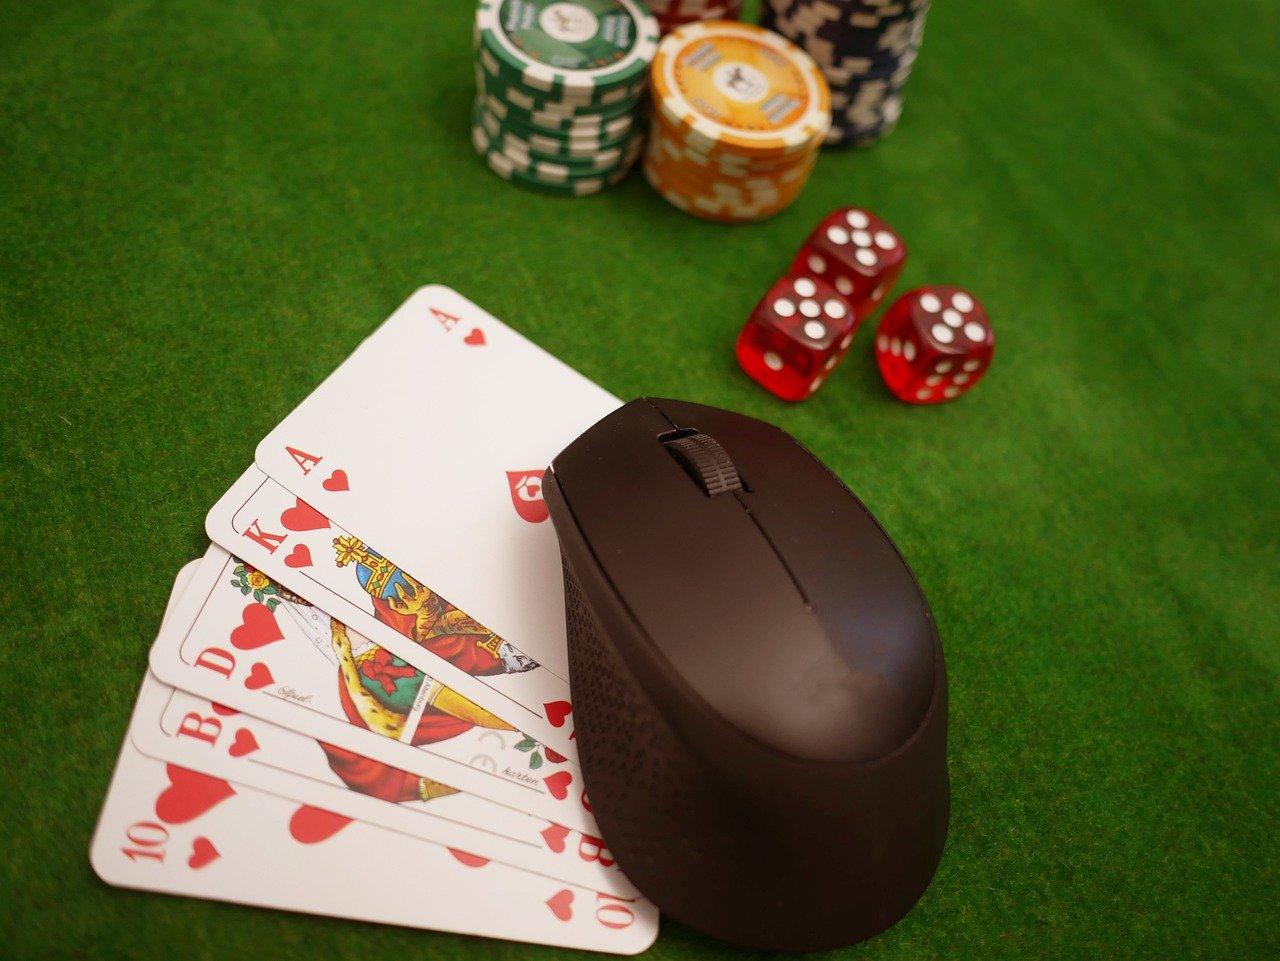 The Trusted Online Gambling Site